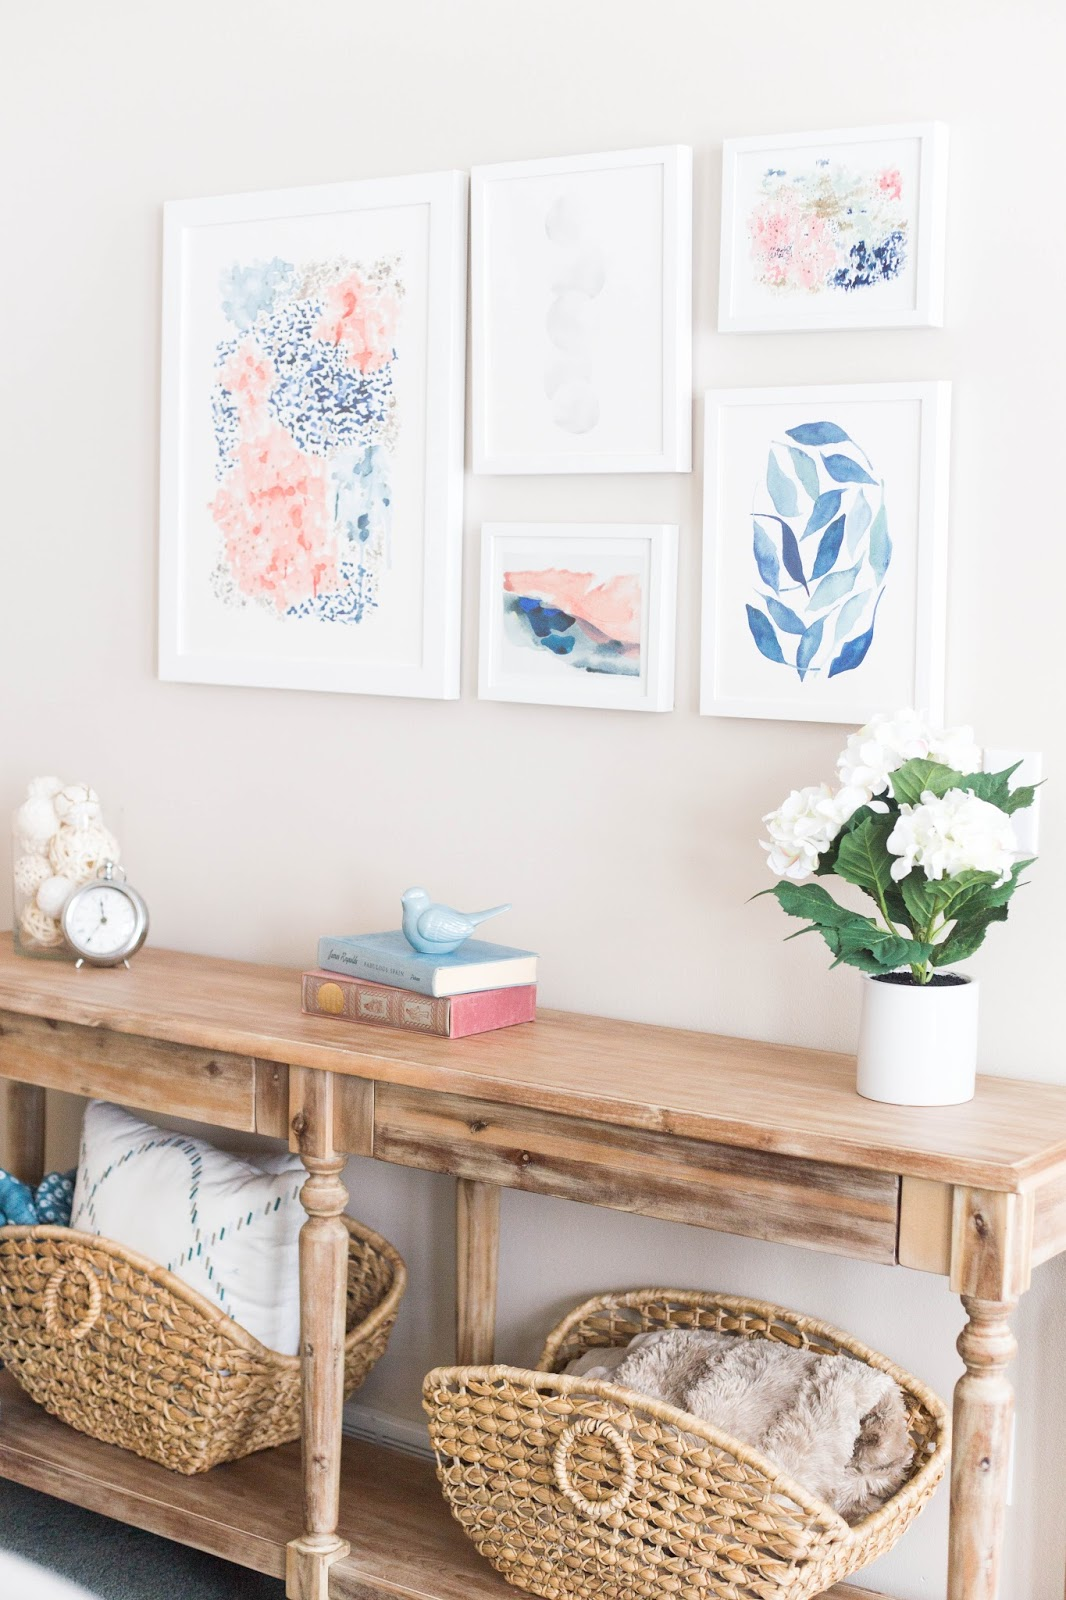 The Light Switch Is Covered By A Beautiful Flower Arrangement Still Leaving  Plenty Of Room To Flip It On And Off. This Foyer / Entry Table ...